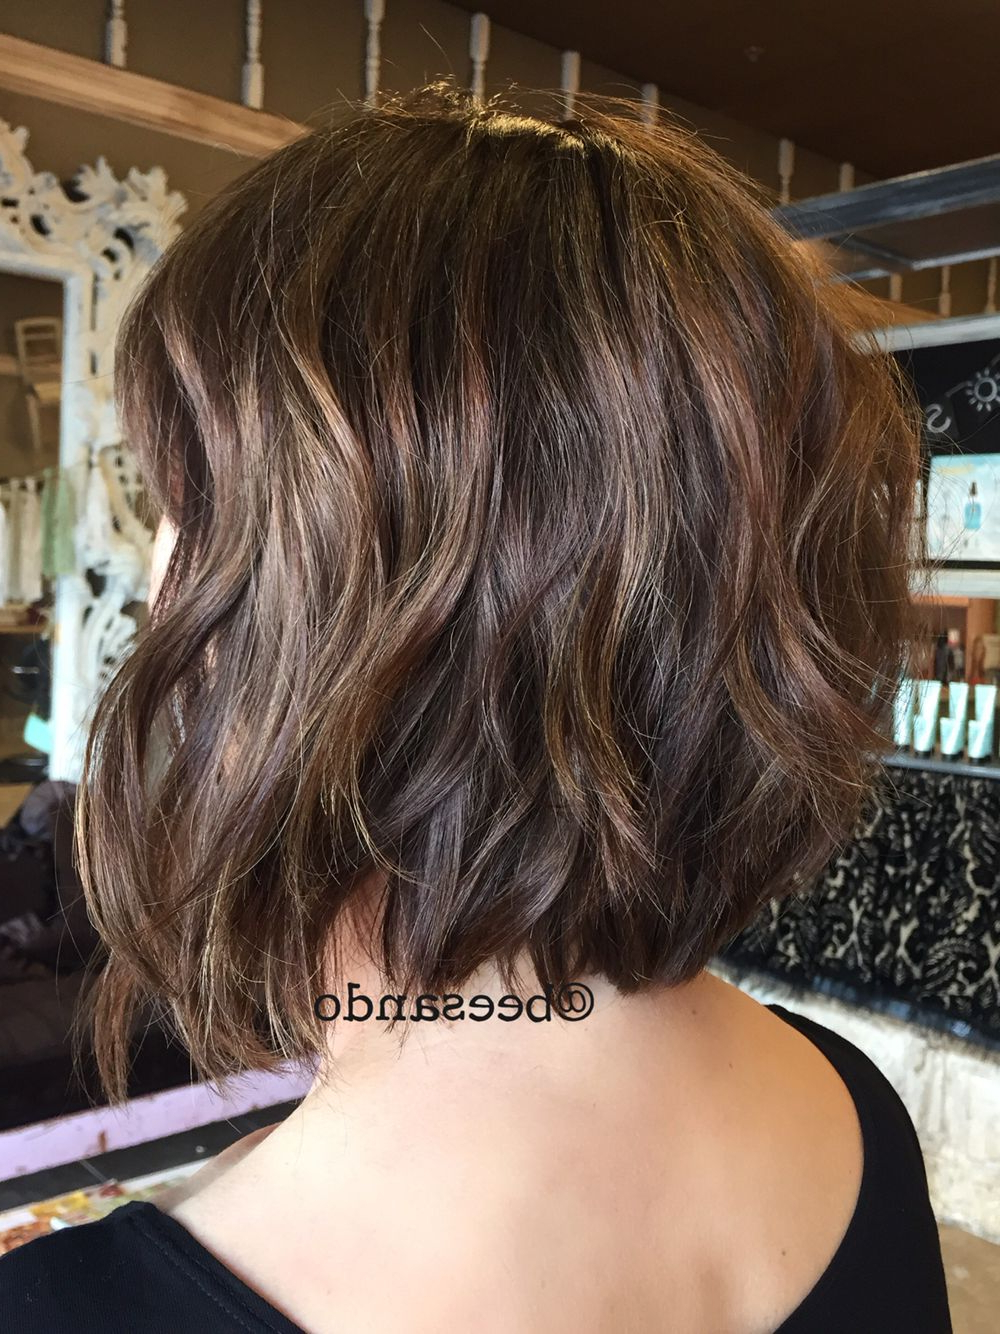 Brunette Balayage Razor Bob | Blondes, Bobs & Balayage | Pinterest In Sexy Tousled Wavy Bob For Brunettes (View 4 of 20)